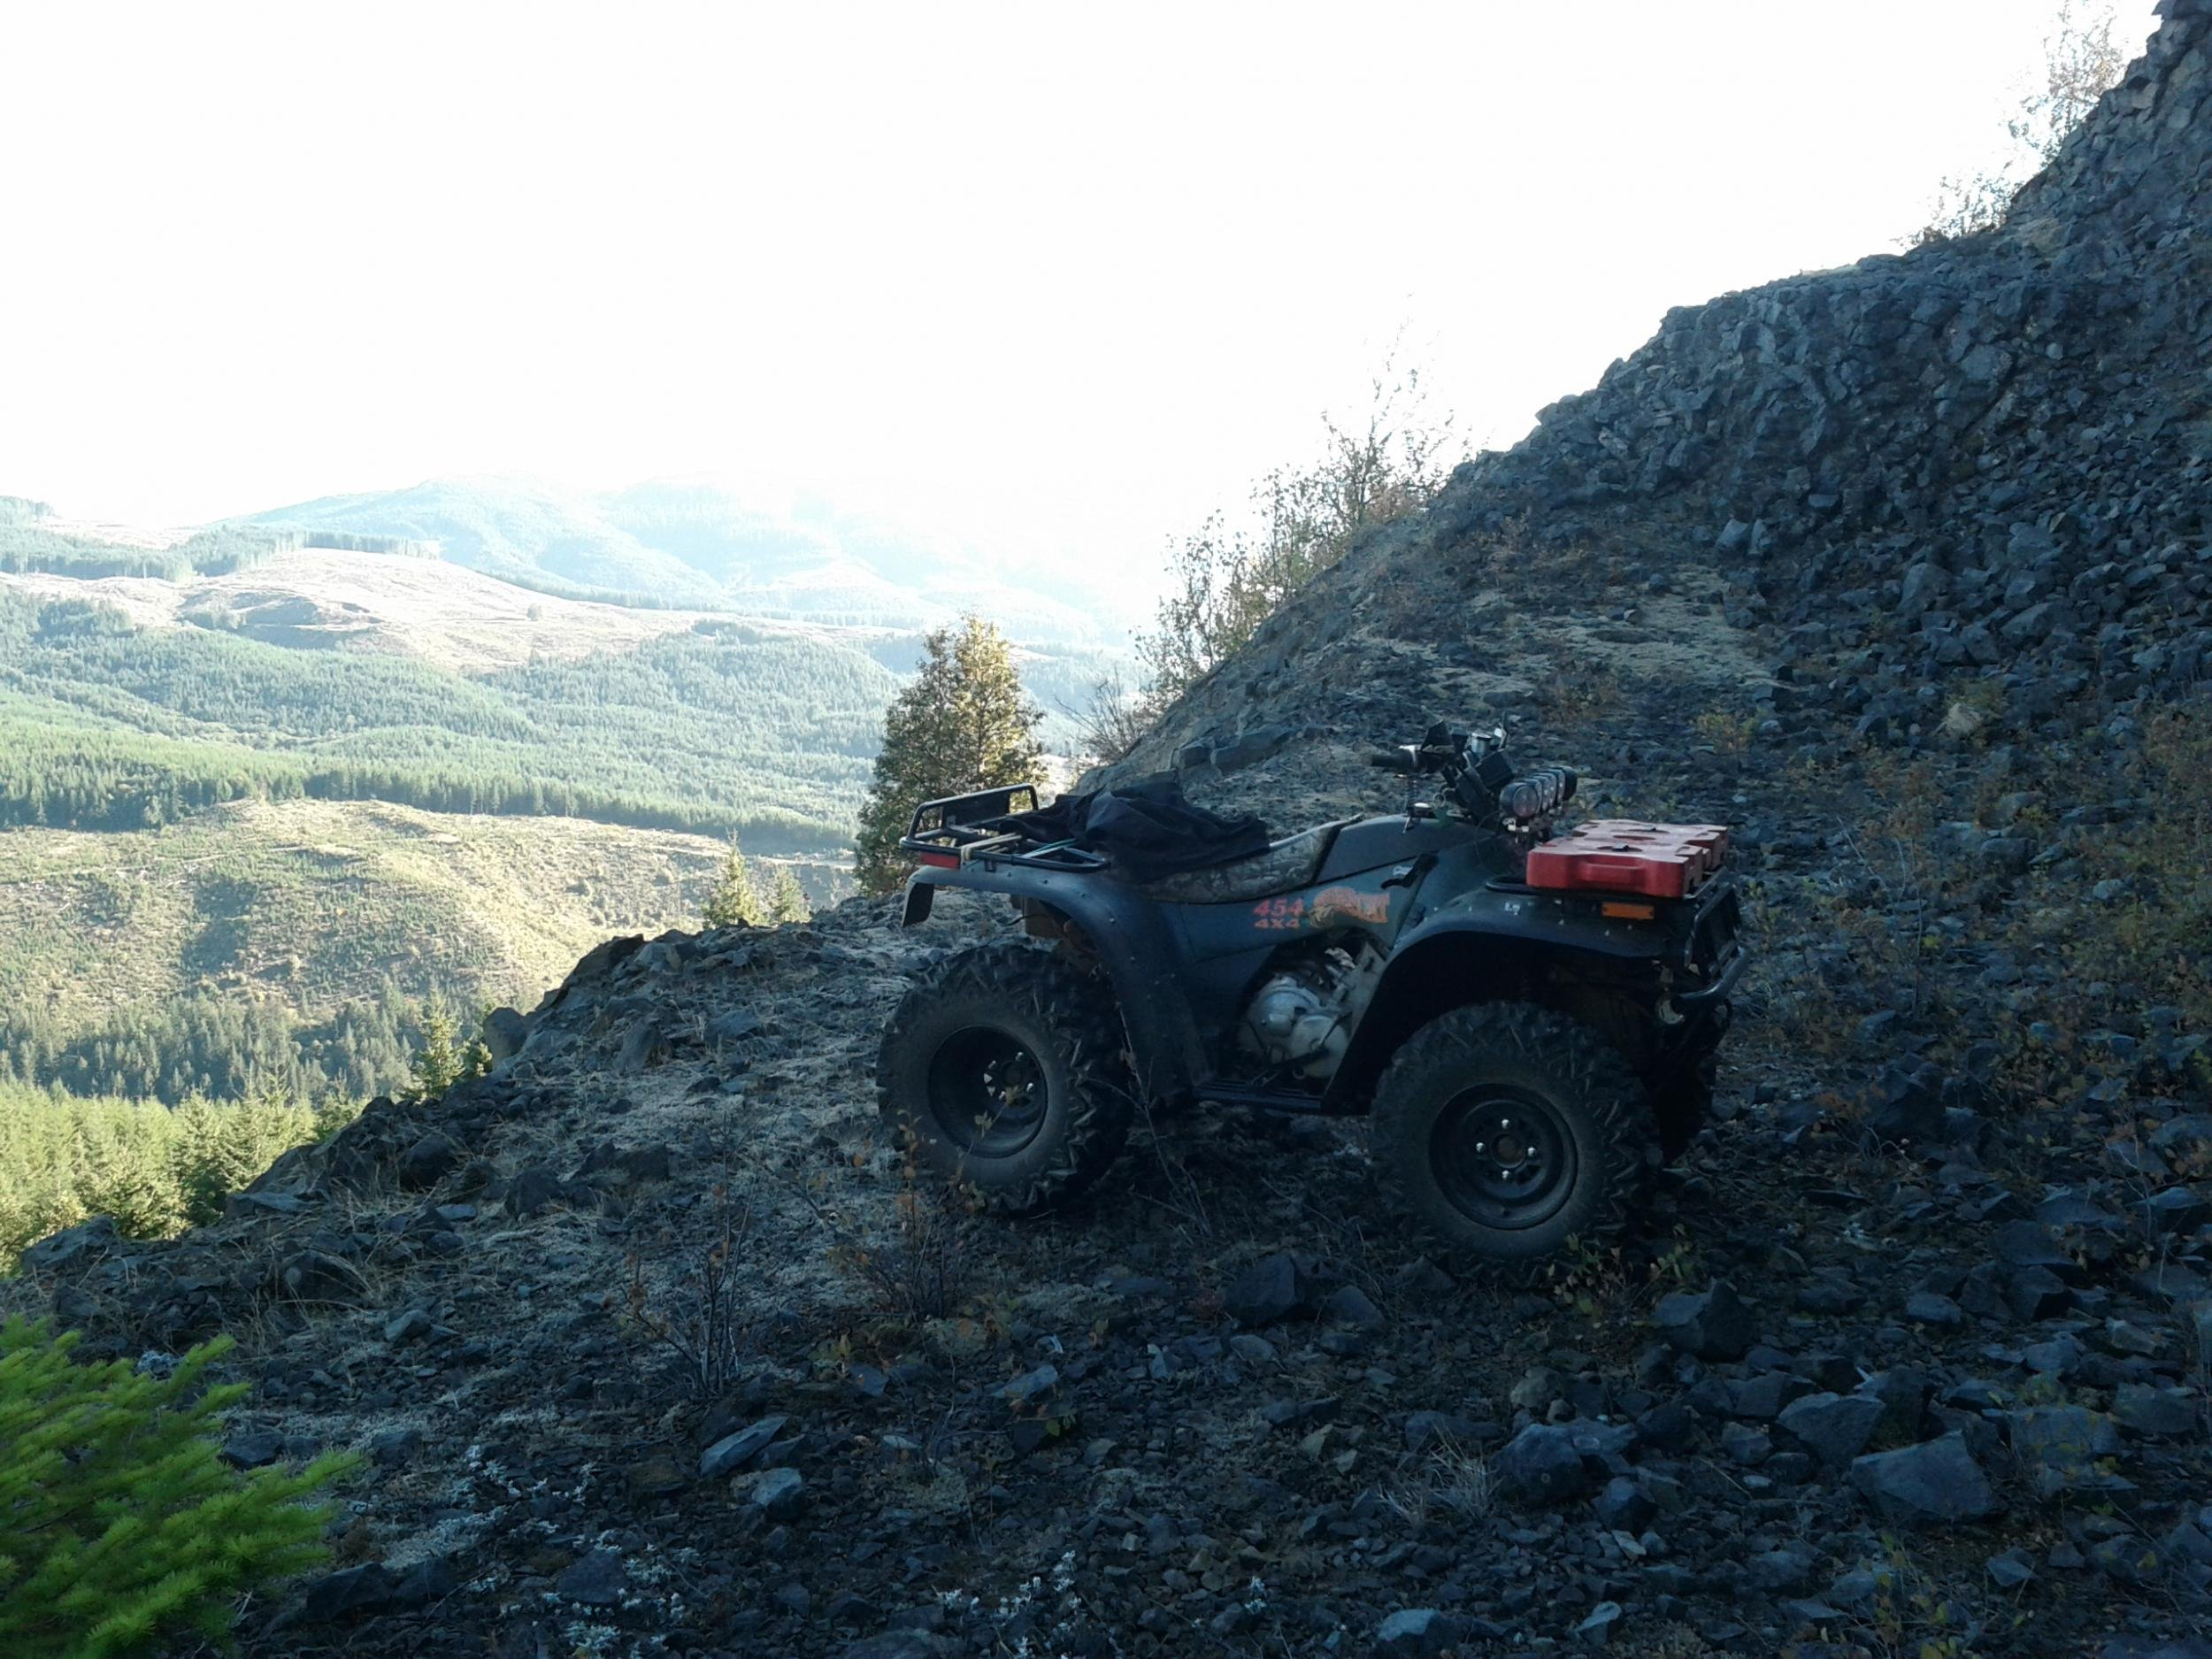 1997 Bearcat 454 - upgrades-img_20120930_164616.jpg